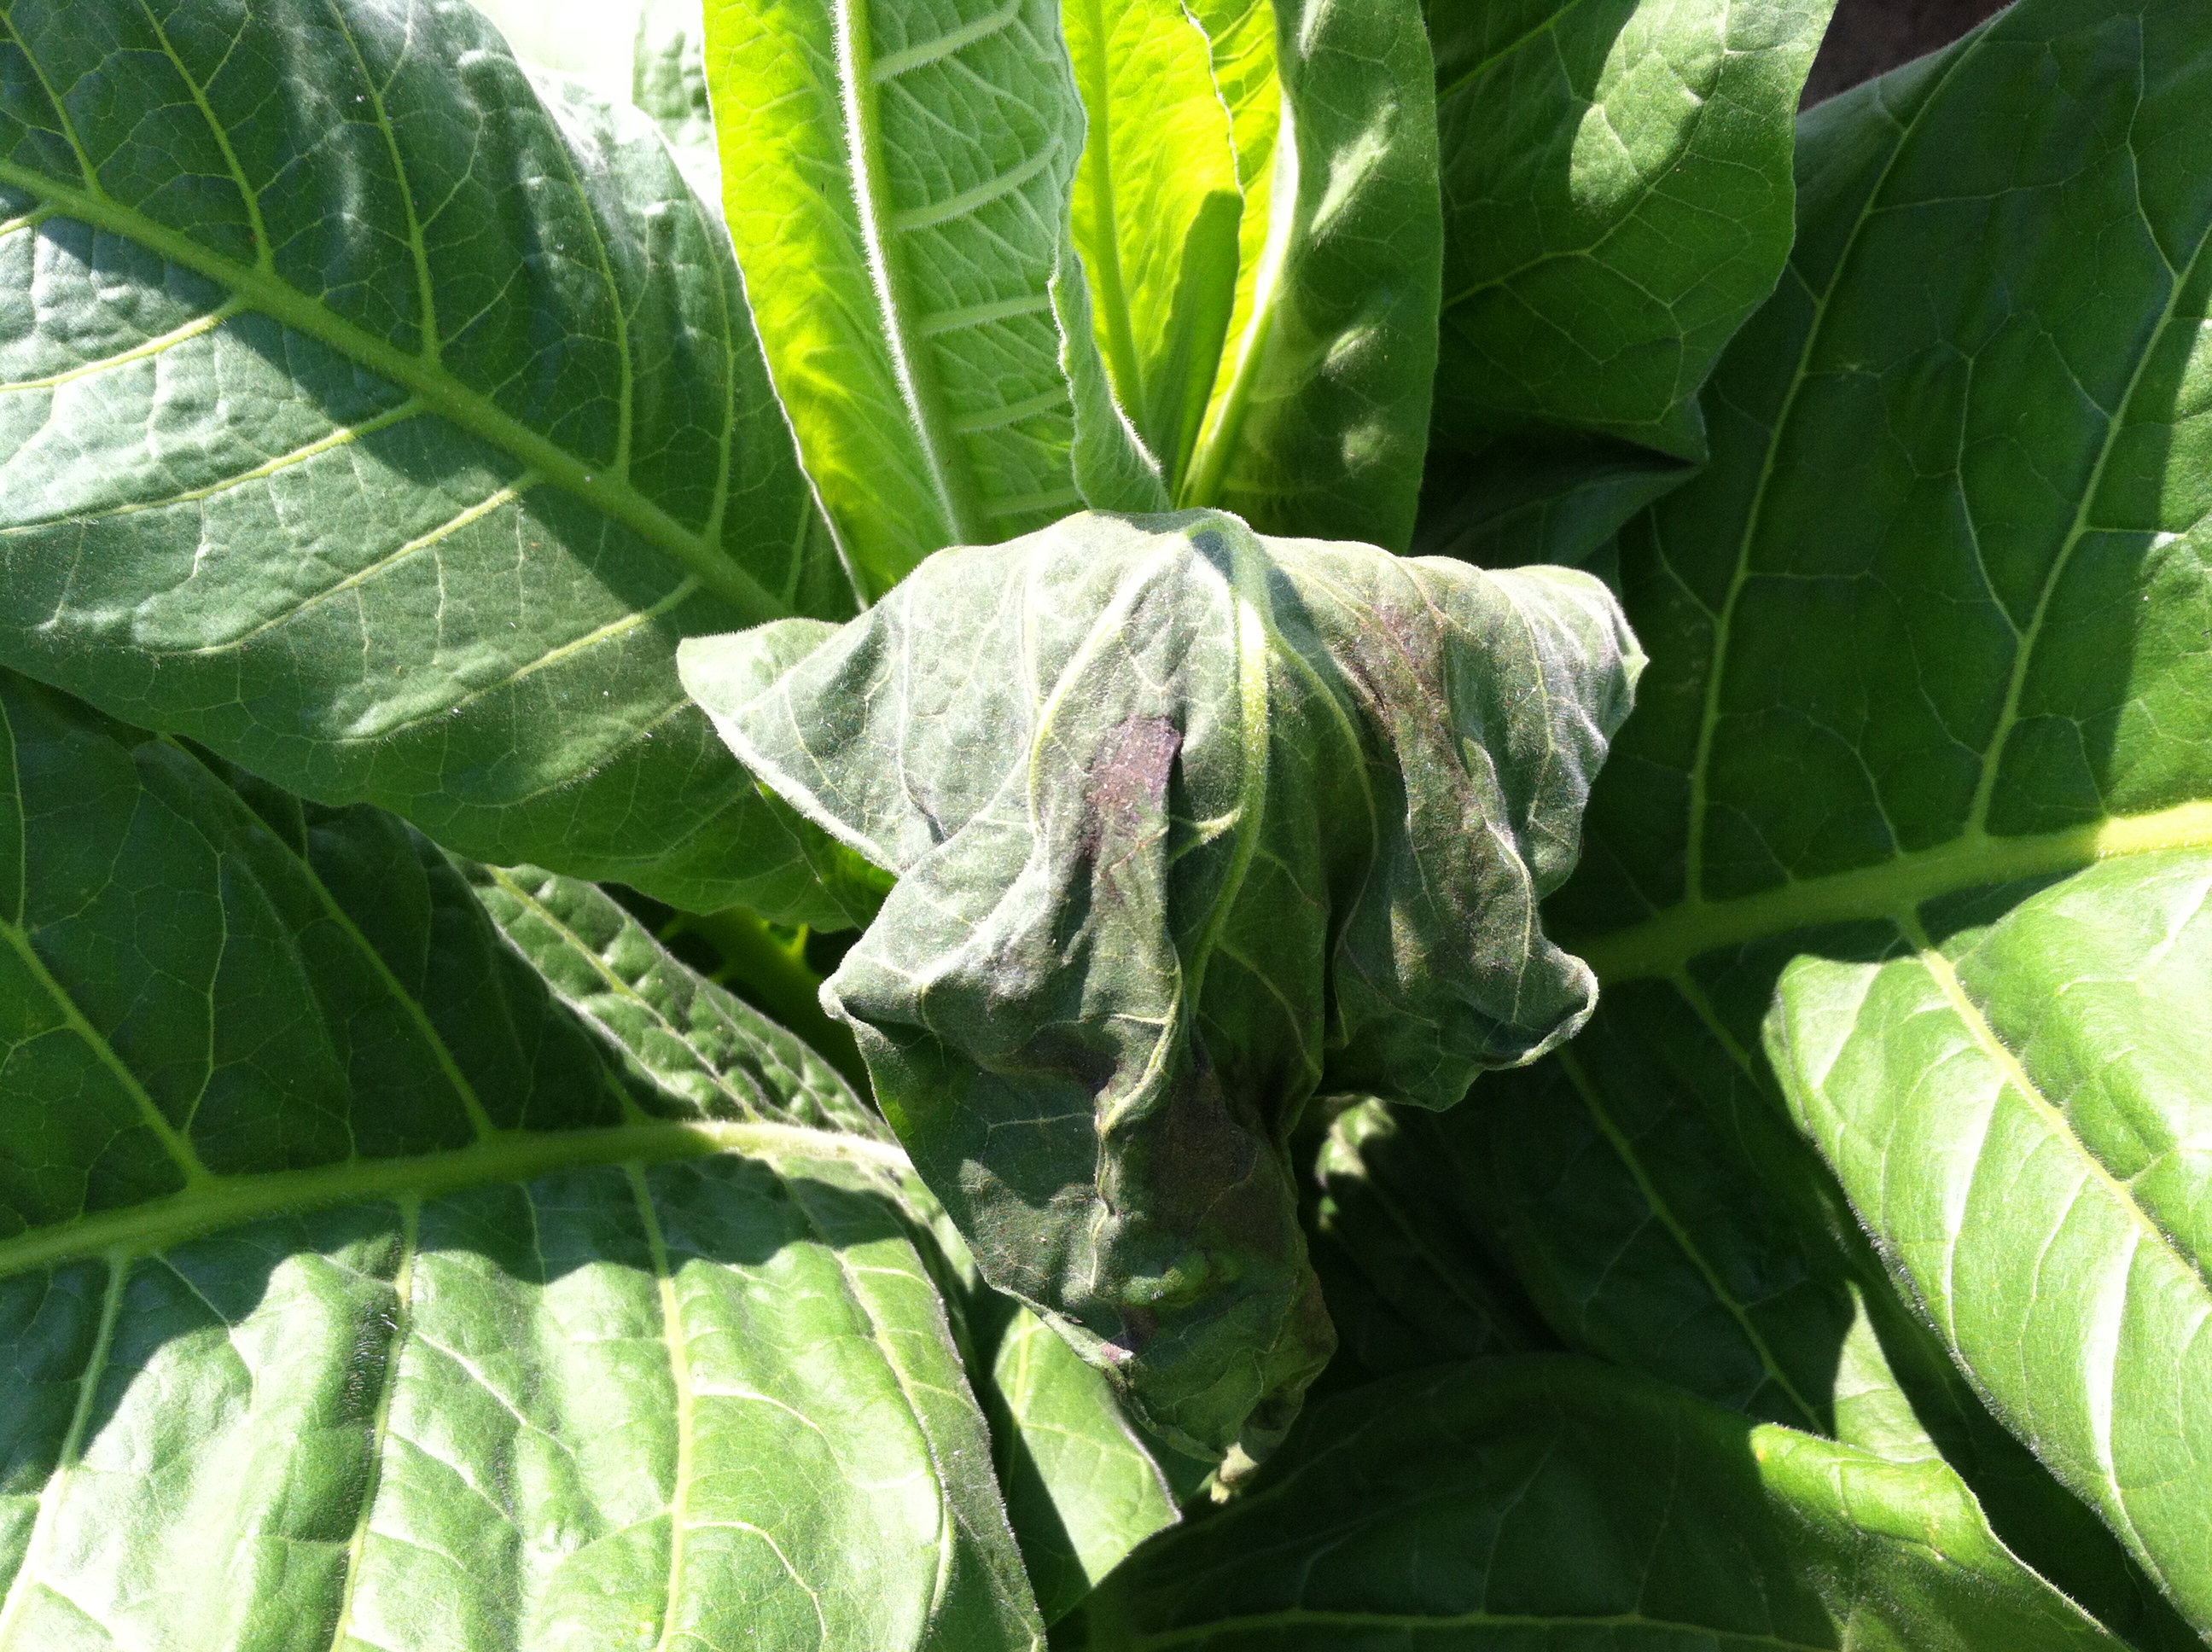 Wilting Leaf and Sun Scald from Stinkbug Feeding